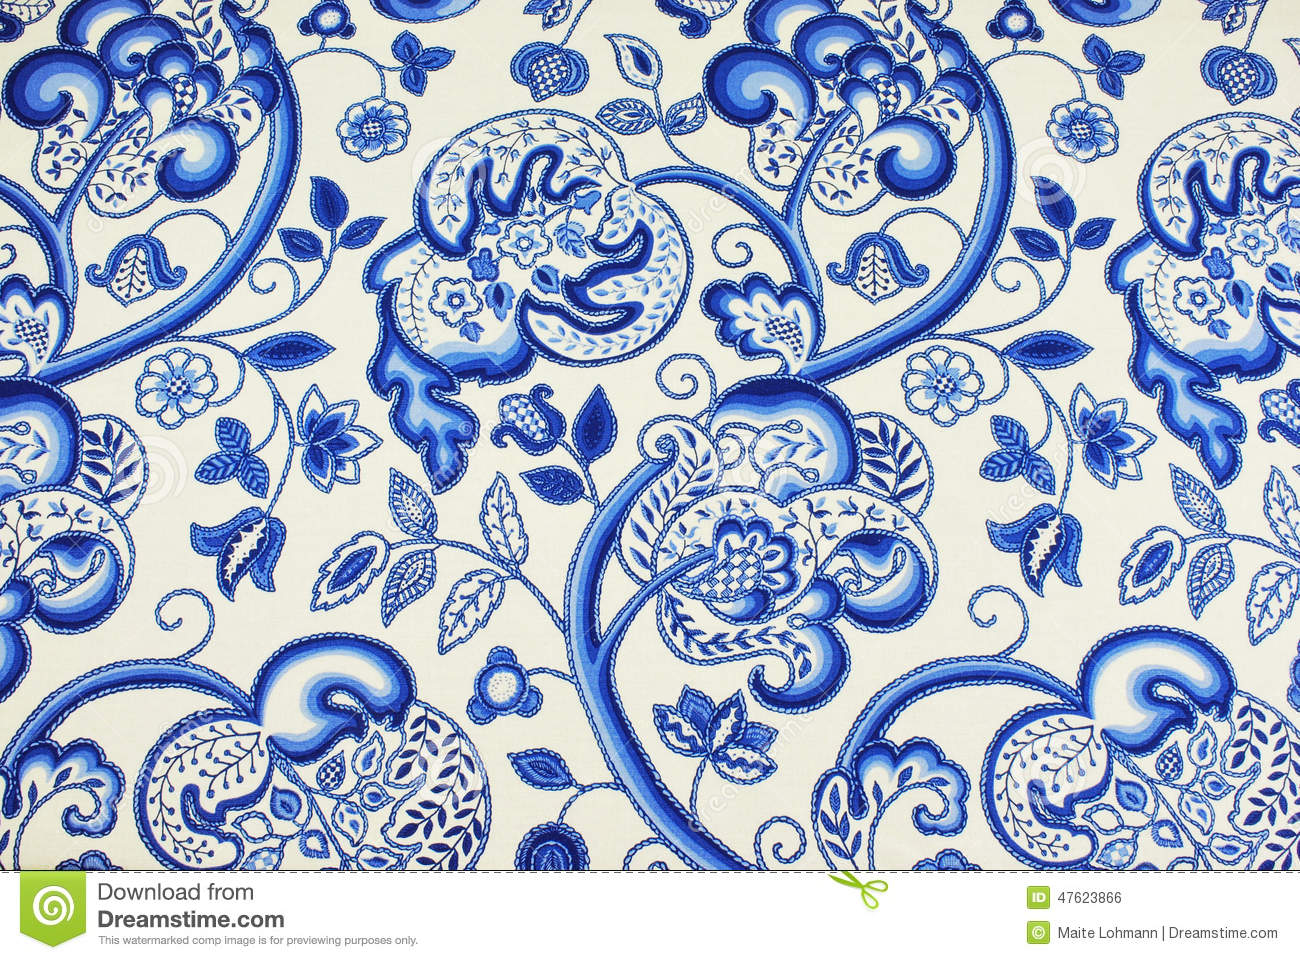 Jacobean patterned fabric stock photo. Image of soft - 47623866